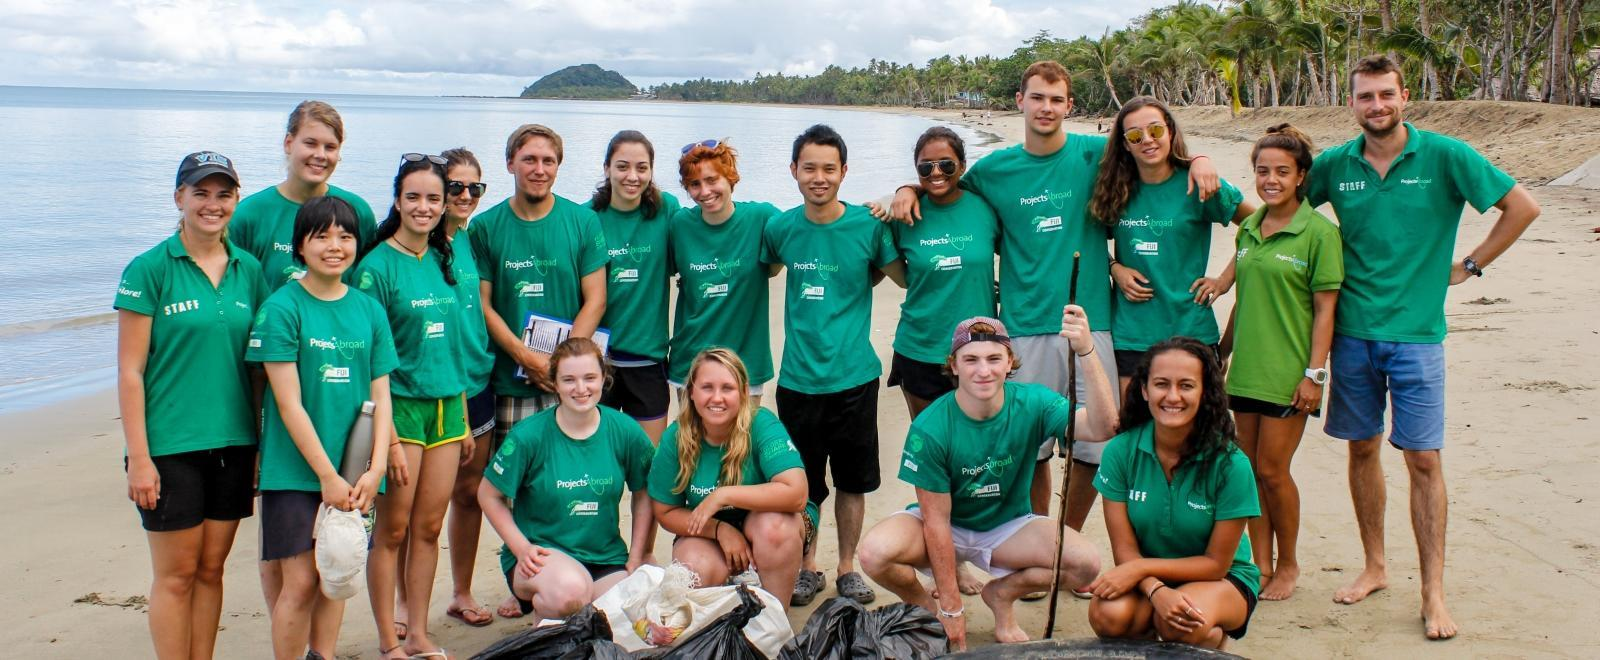 Projects Abroad volunteers pose after a successful beach clean up in Fiji.